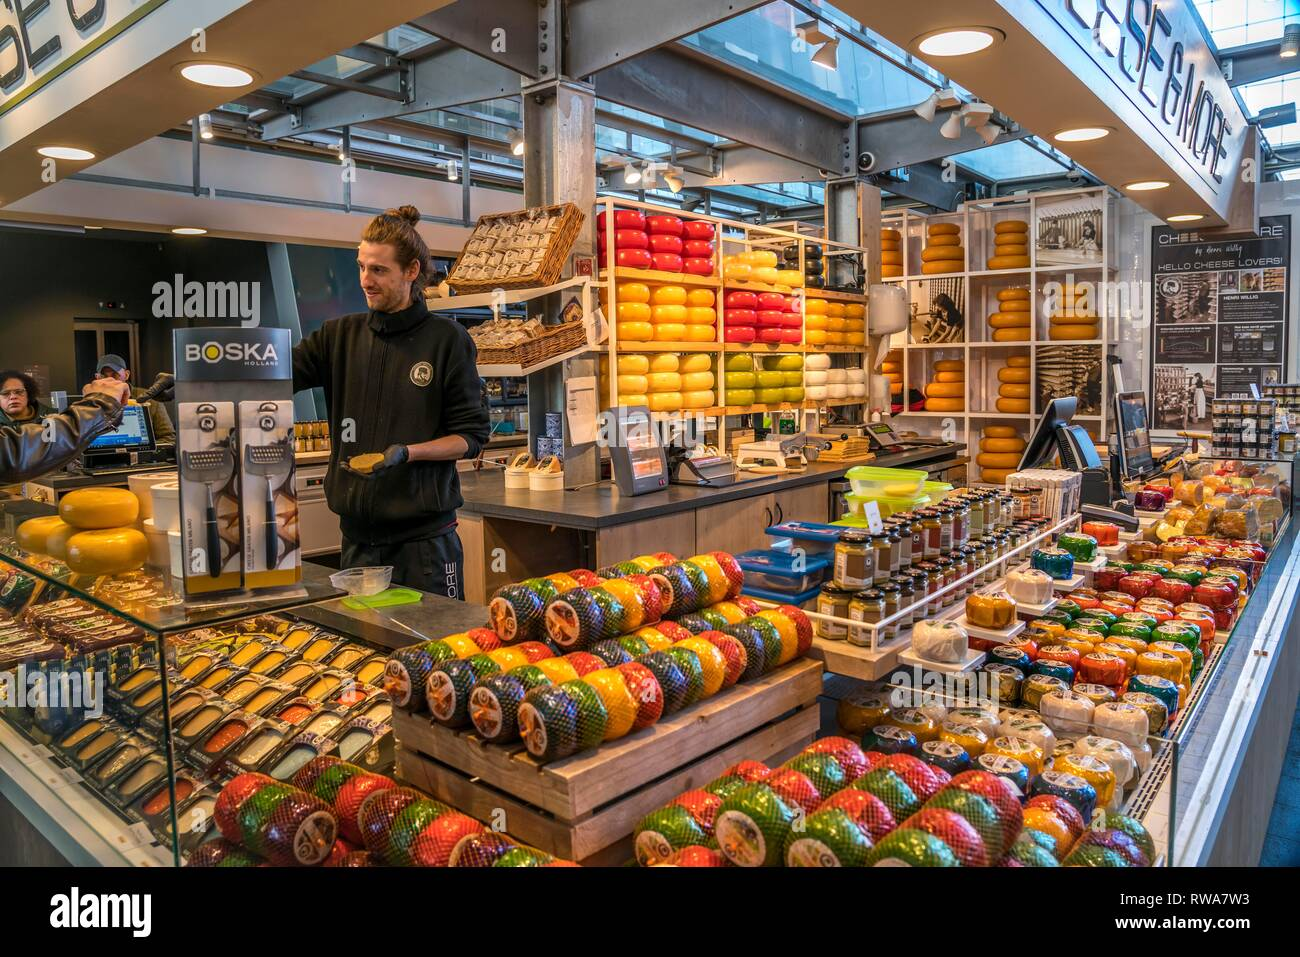 Market stall with Dutch cheese, Markthalle, Markthal, Rotterdam, Südholland, Netherlands - Stock Image